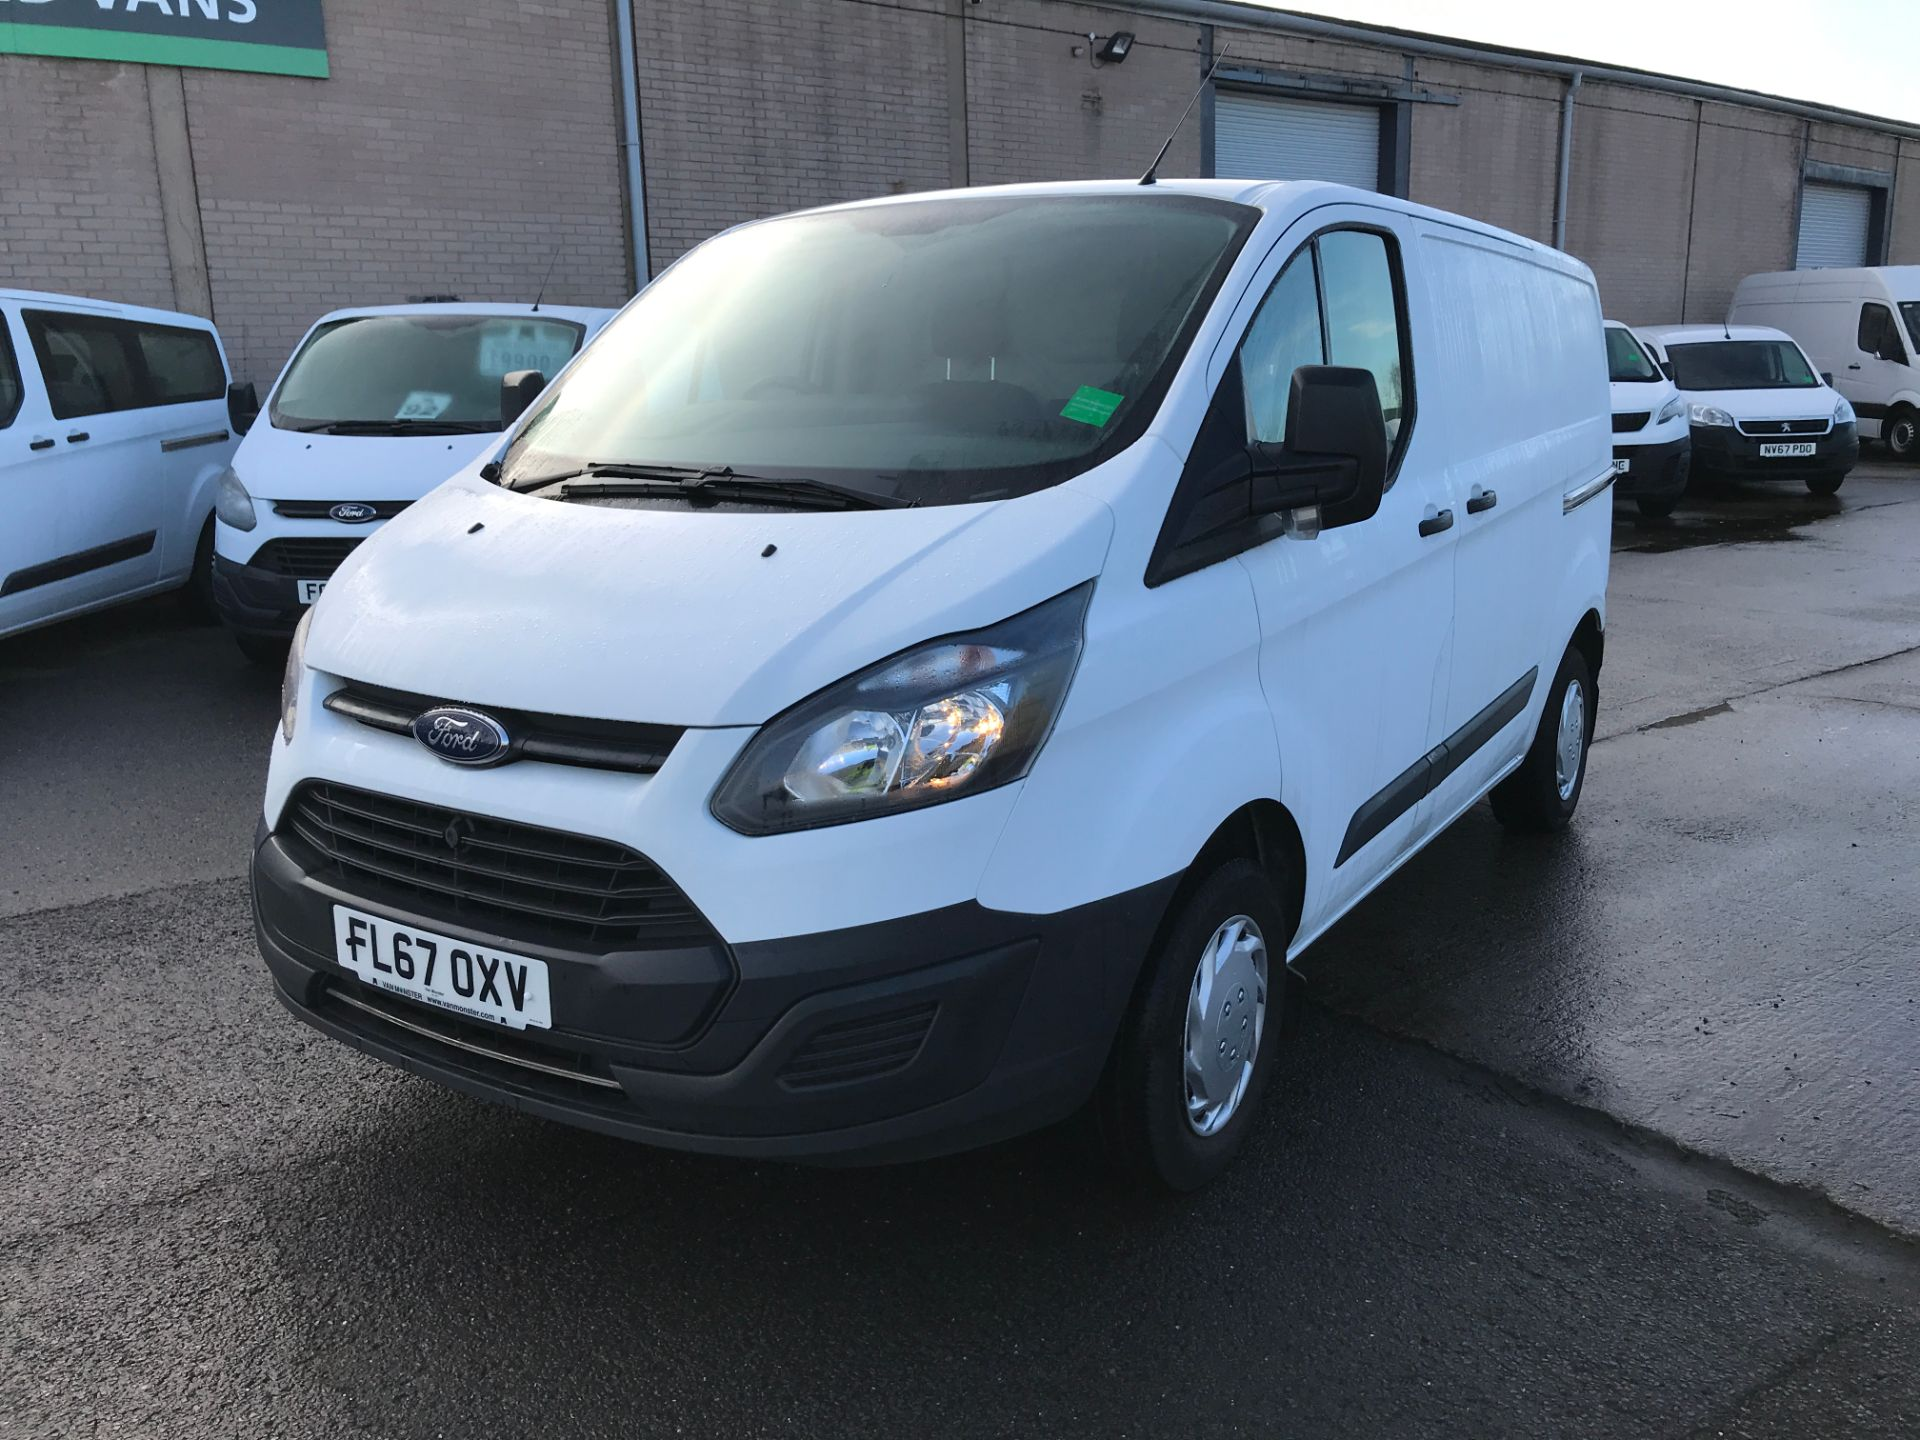 2017 Ford Transit Custom 290 L1 2.0TDCI 105PS LOW ROOF EURO 6 (FL67OXV) Image 13